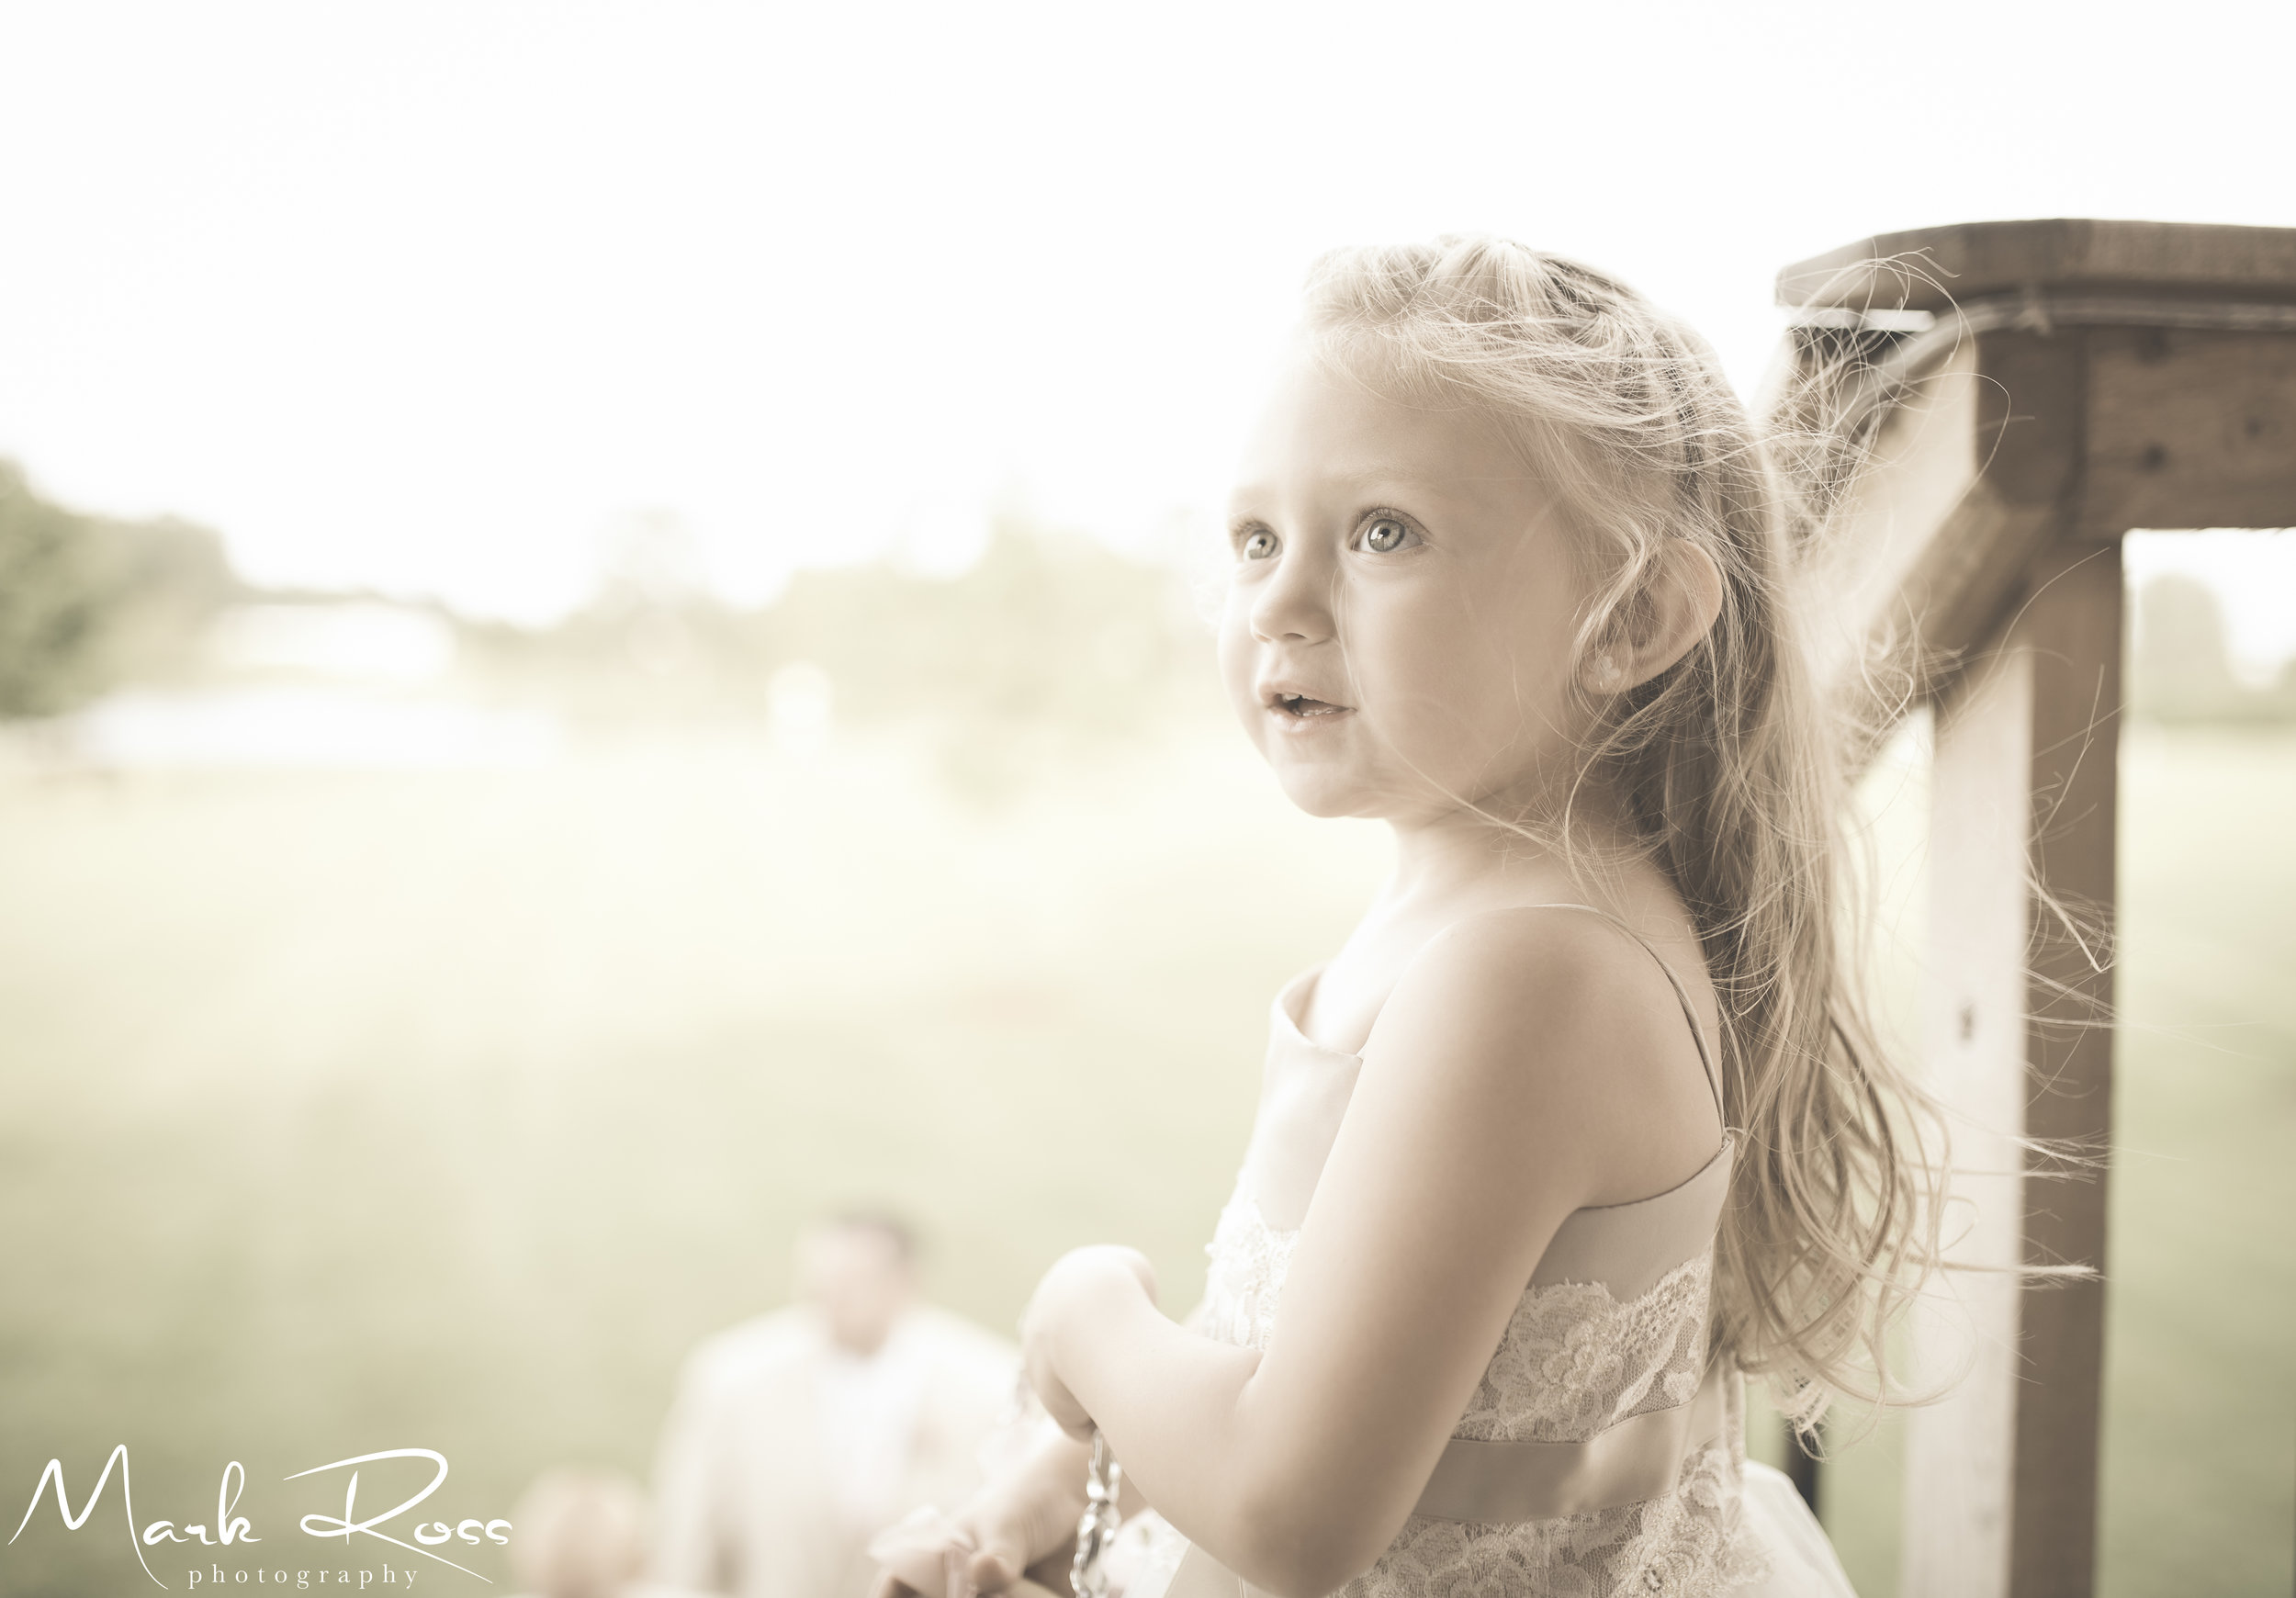 ...the flower girl after.